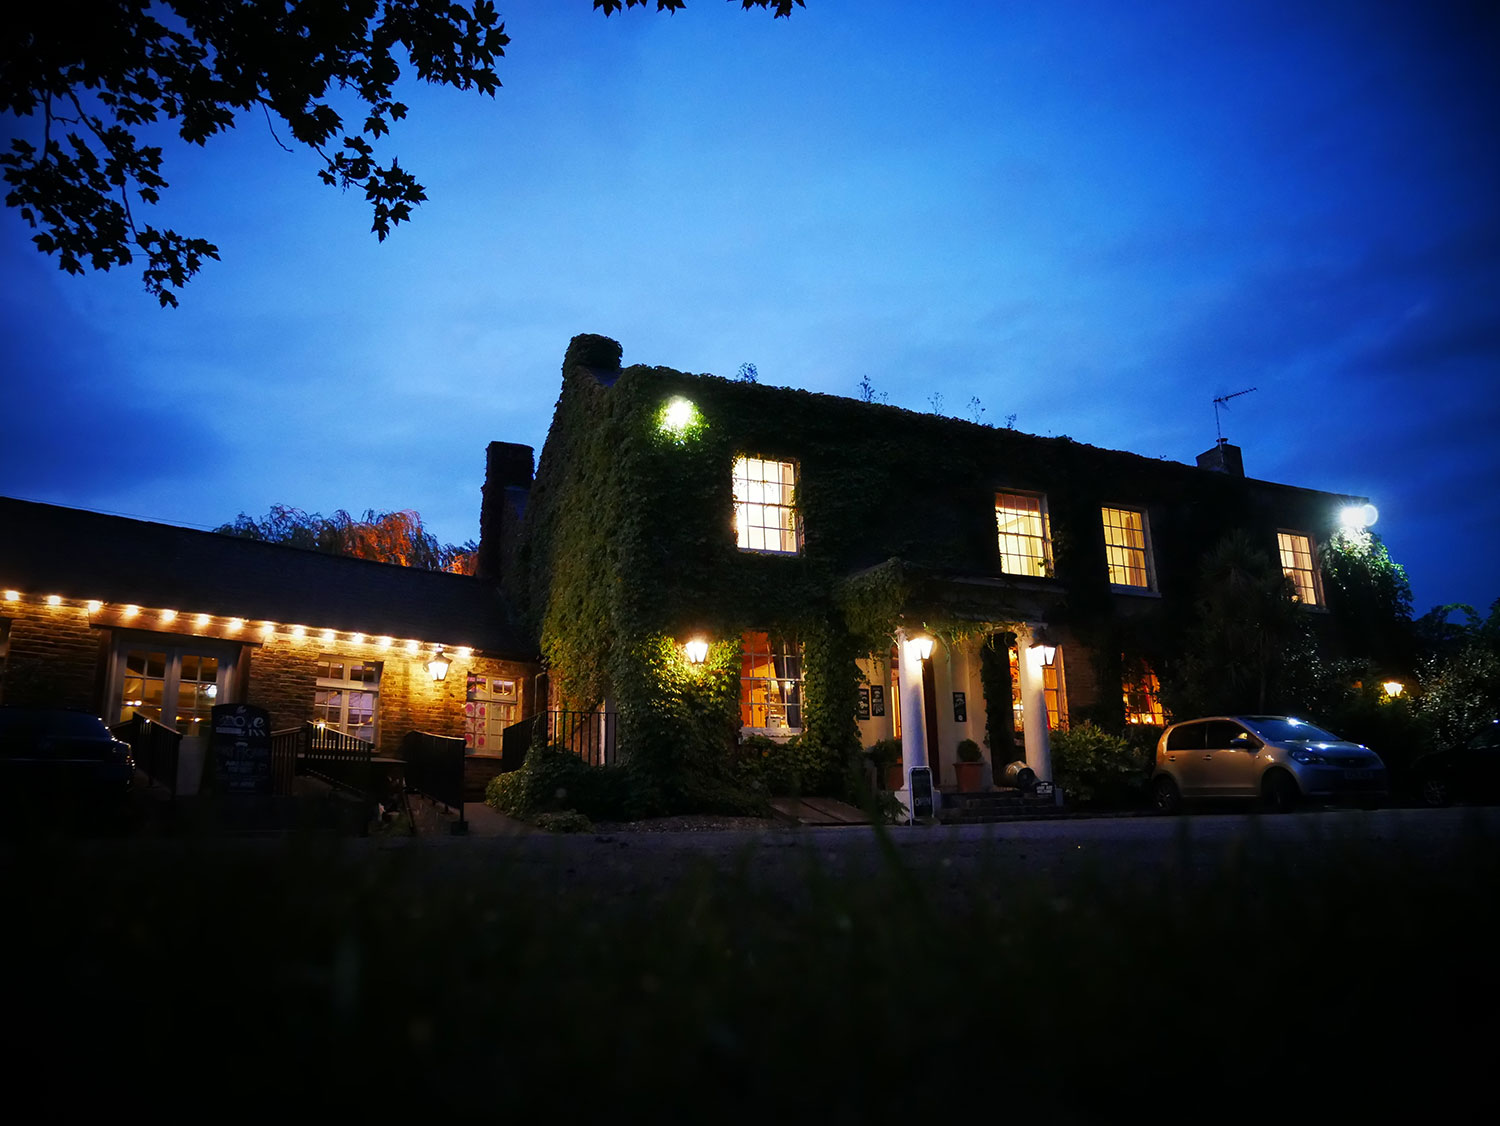 grove-ferry-front-at-night-yummy-pub-co.jpg